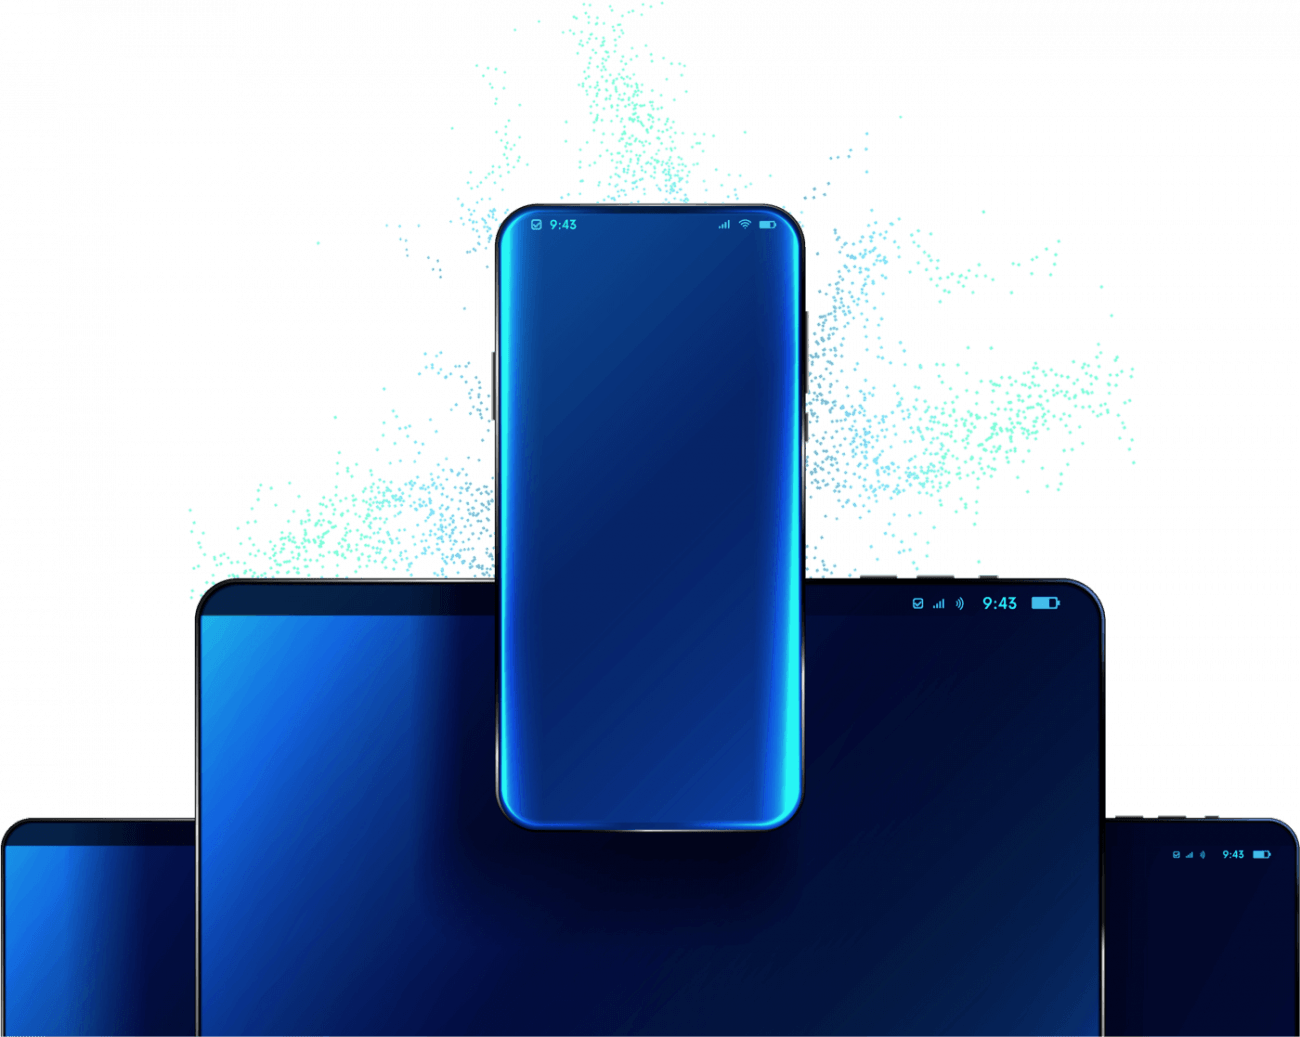 Illustrations of mobile and tablet devices.